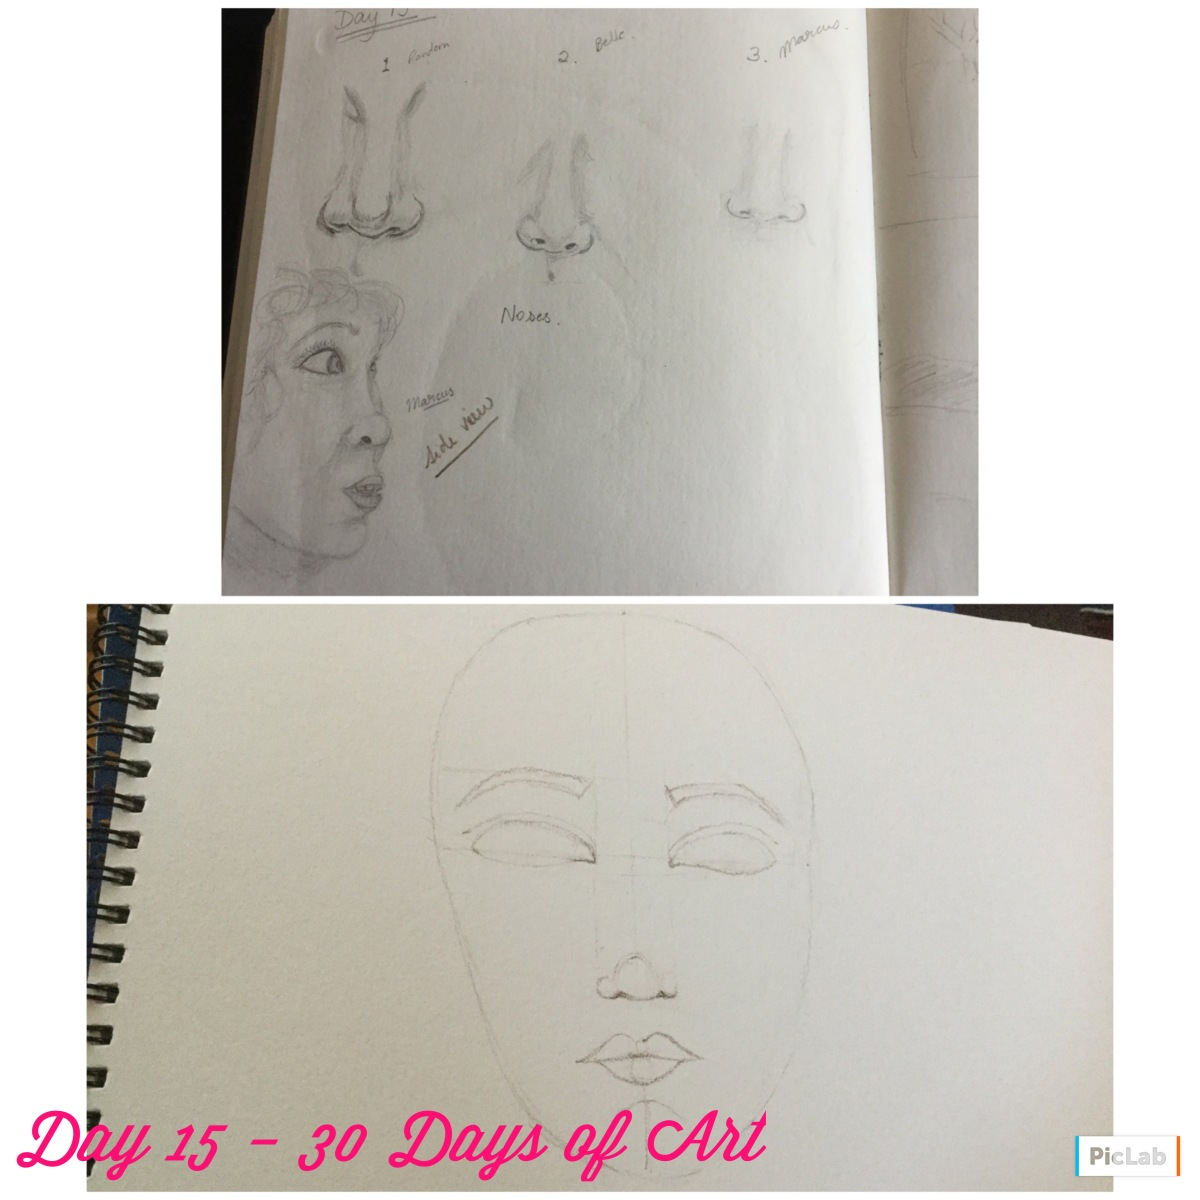 Day 15 – 30 Days of Art